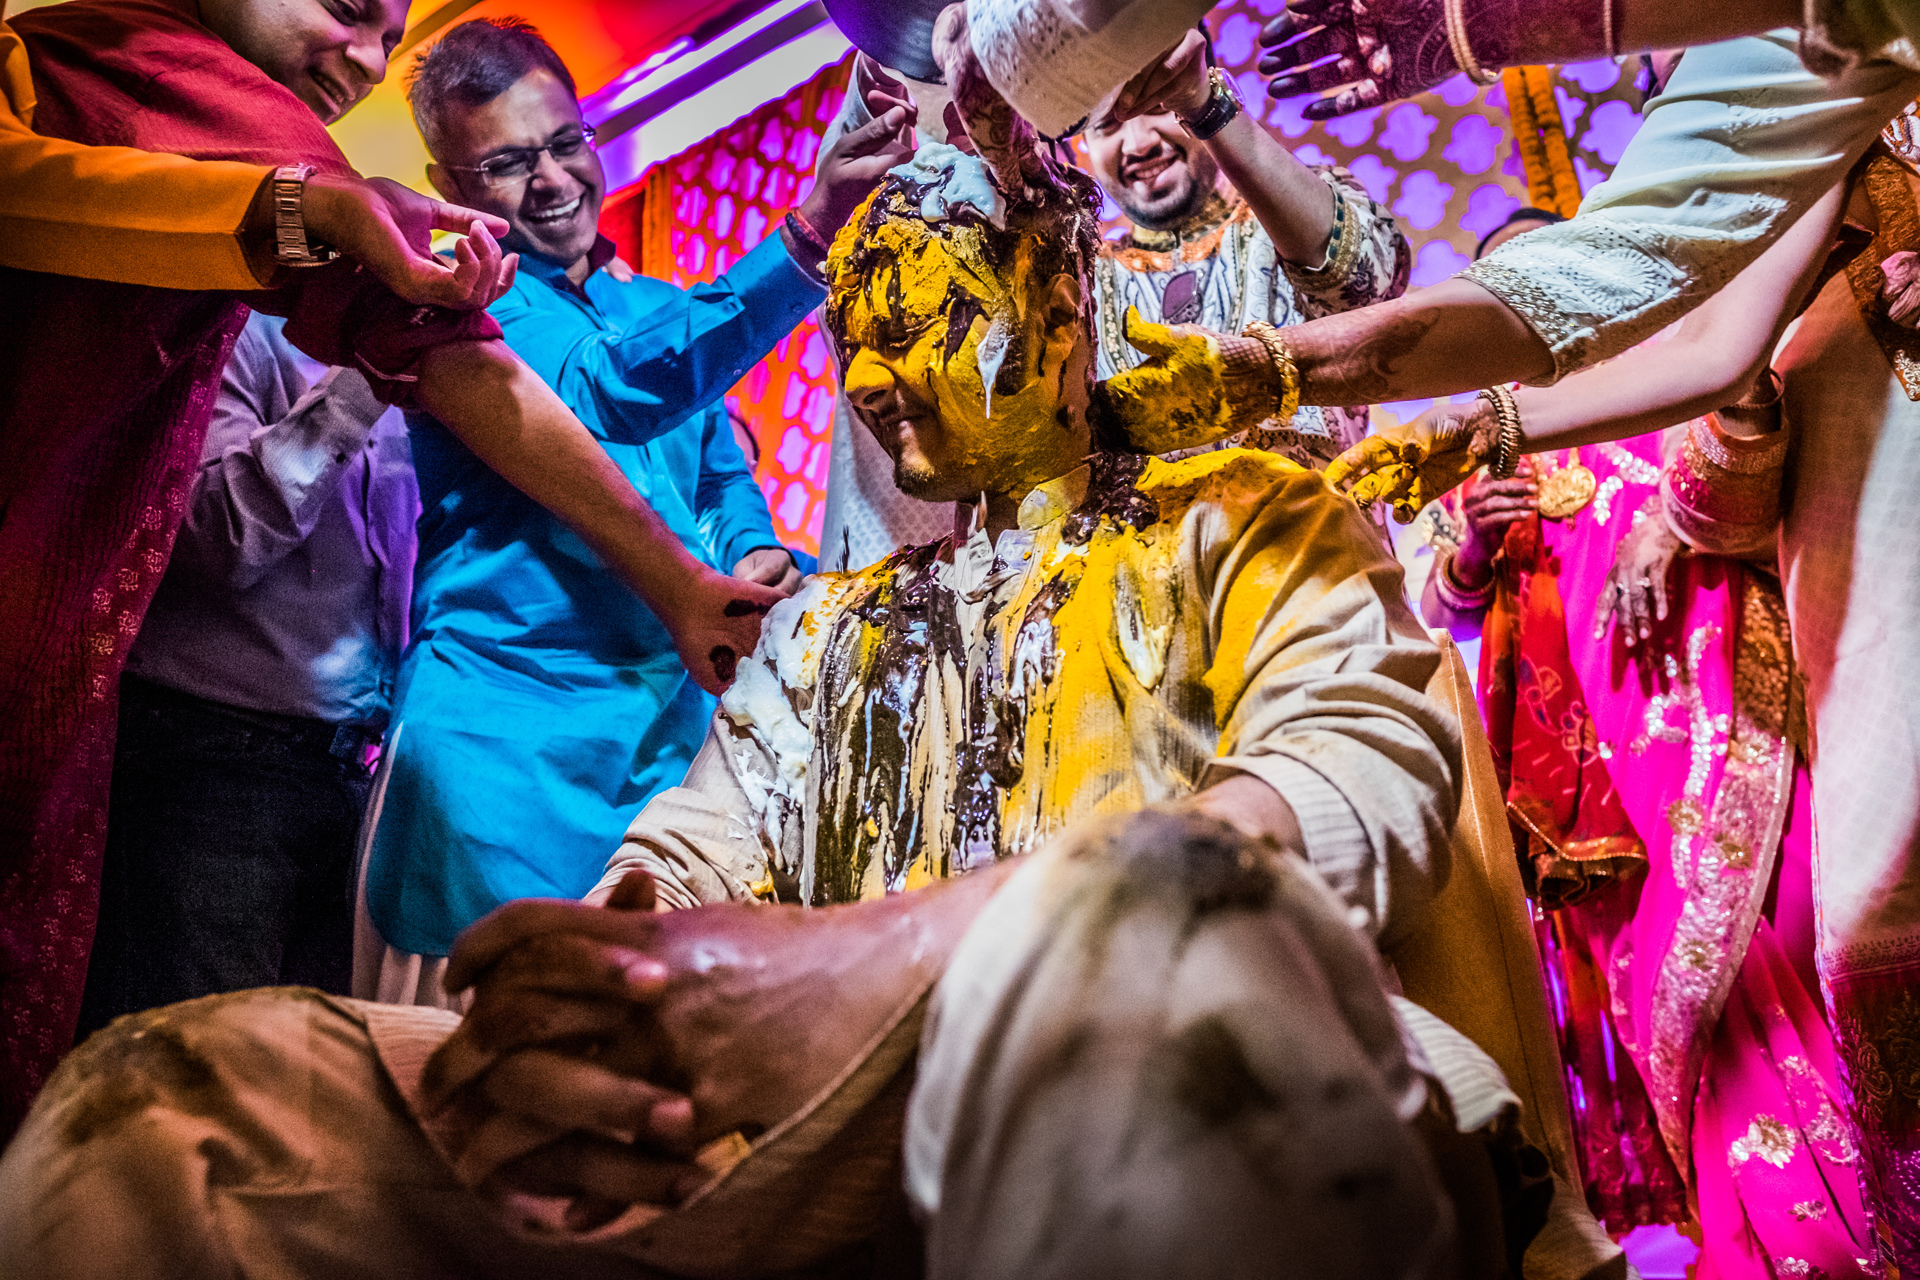 Indian saffron ceremony by Sephi Bergerson